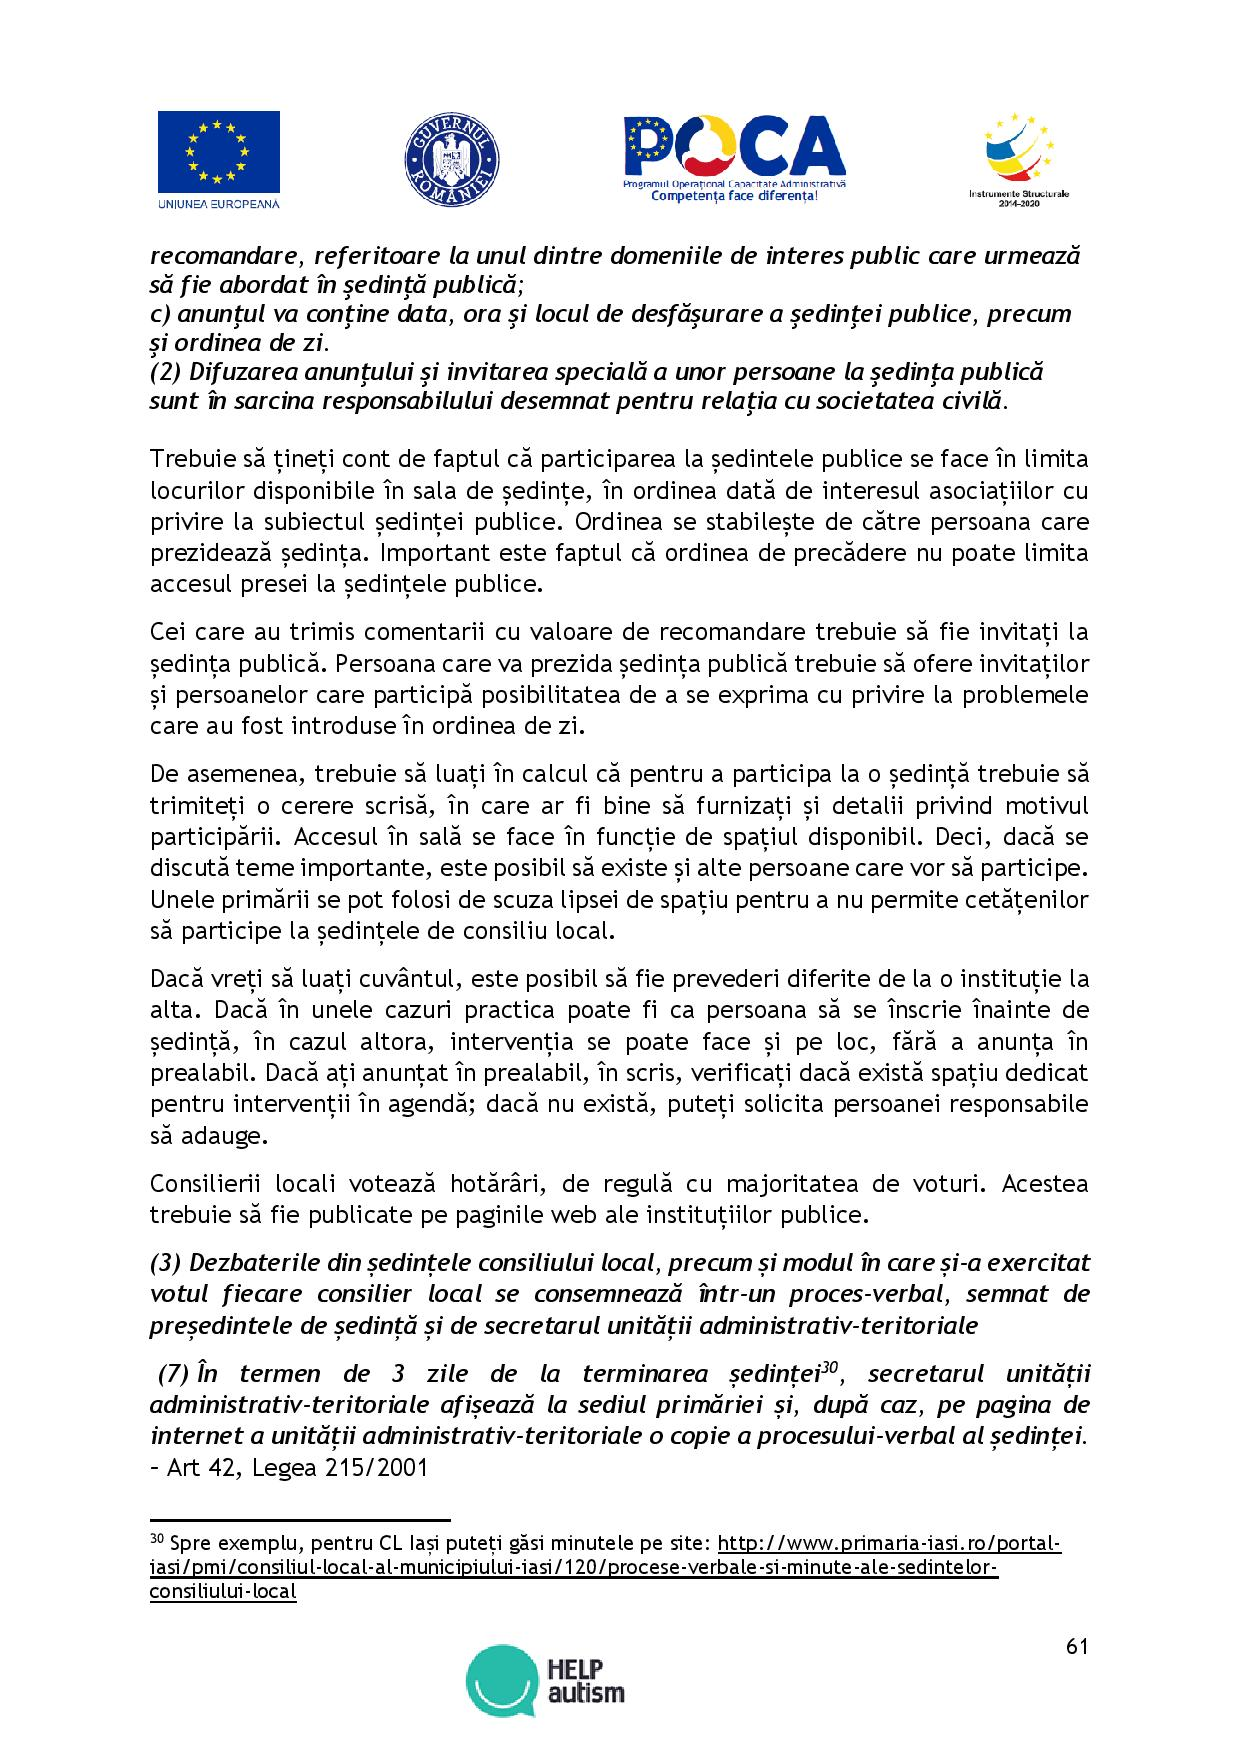 Manual-aug 2019 - incepatori-page-061.jpg